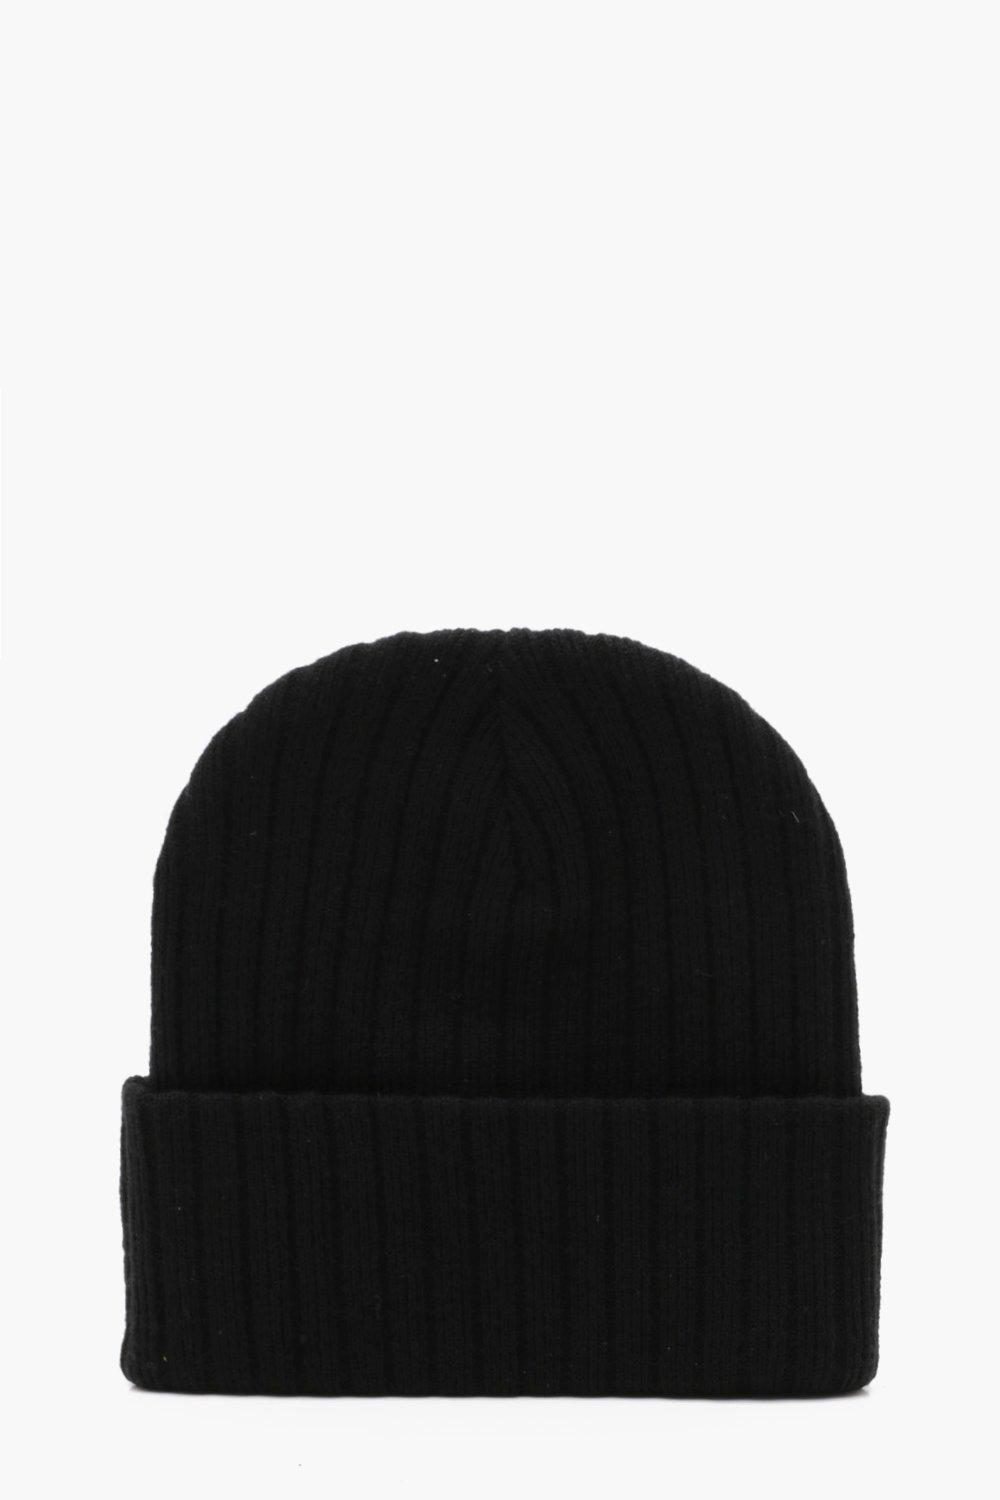 boohooMAN black Ribbed Knit Beanie With Turn Up